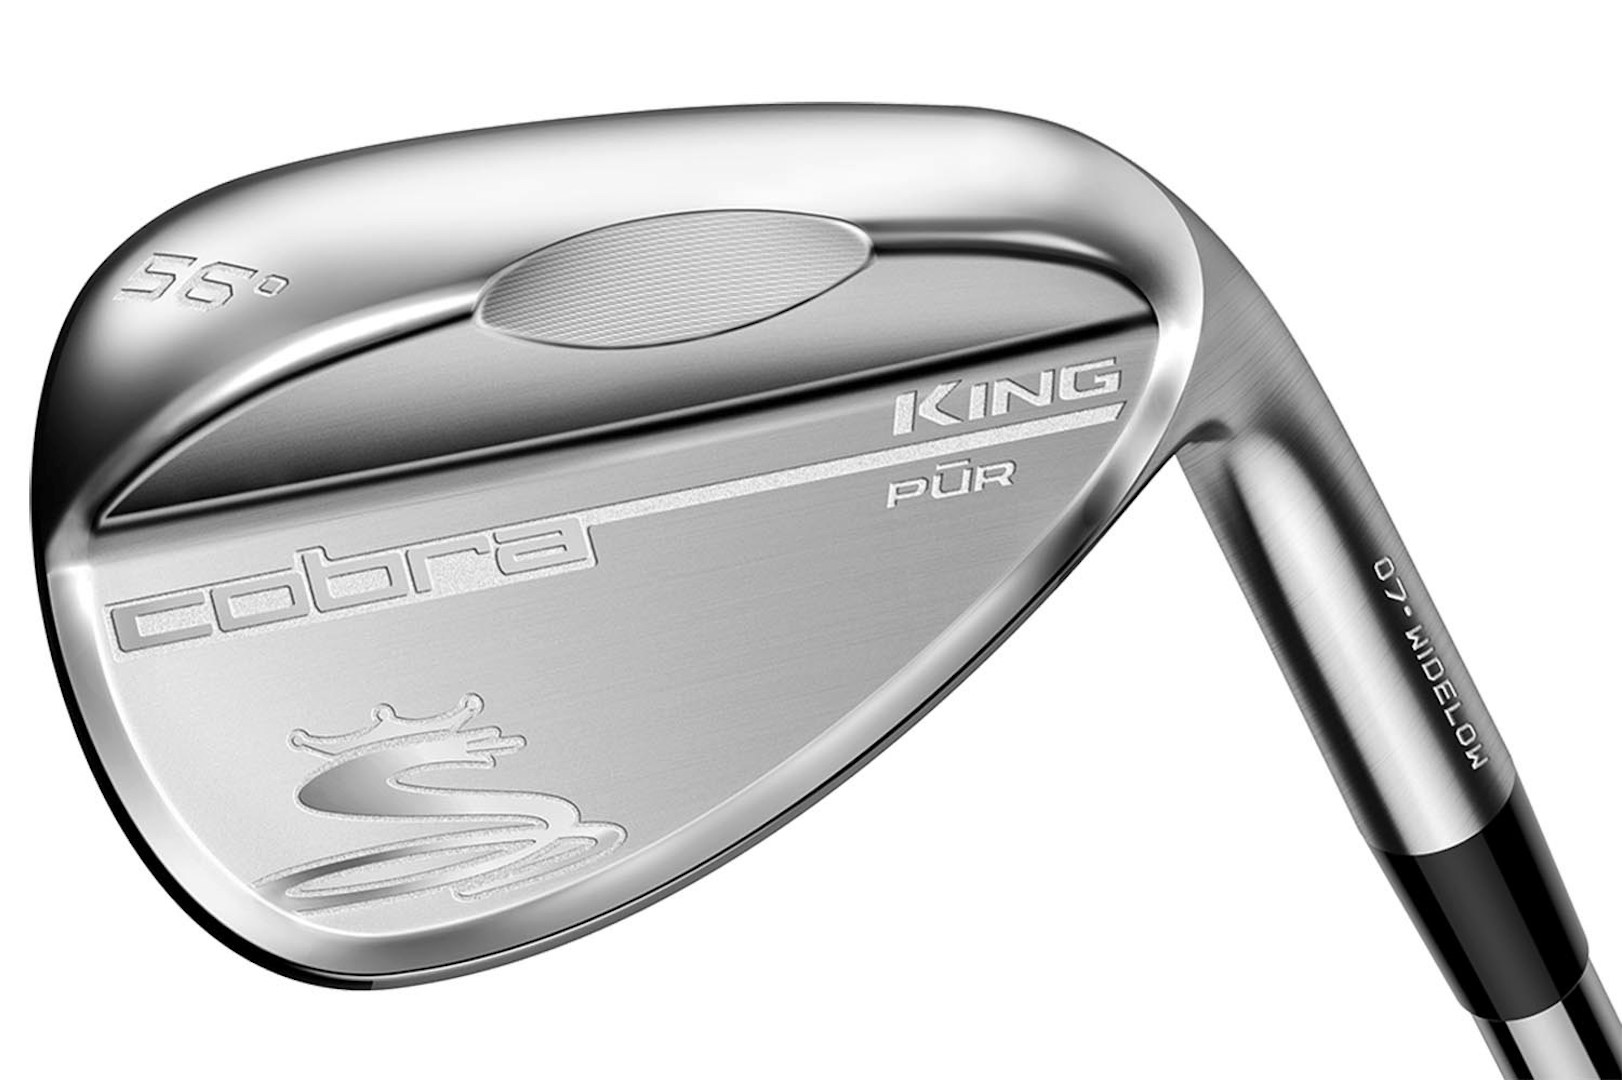 Ping launch 2 PLD2 putters